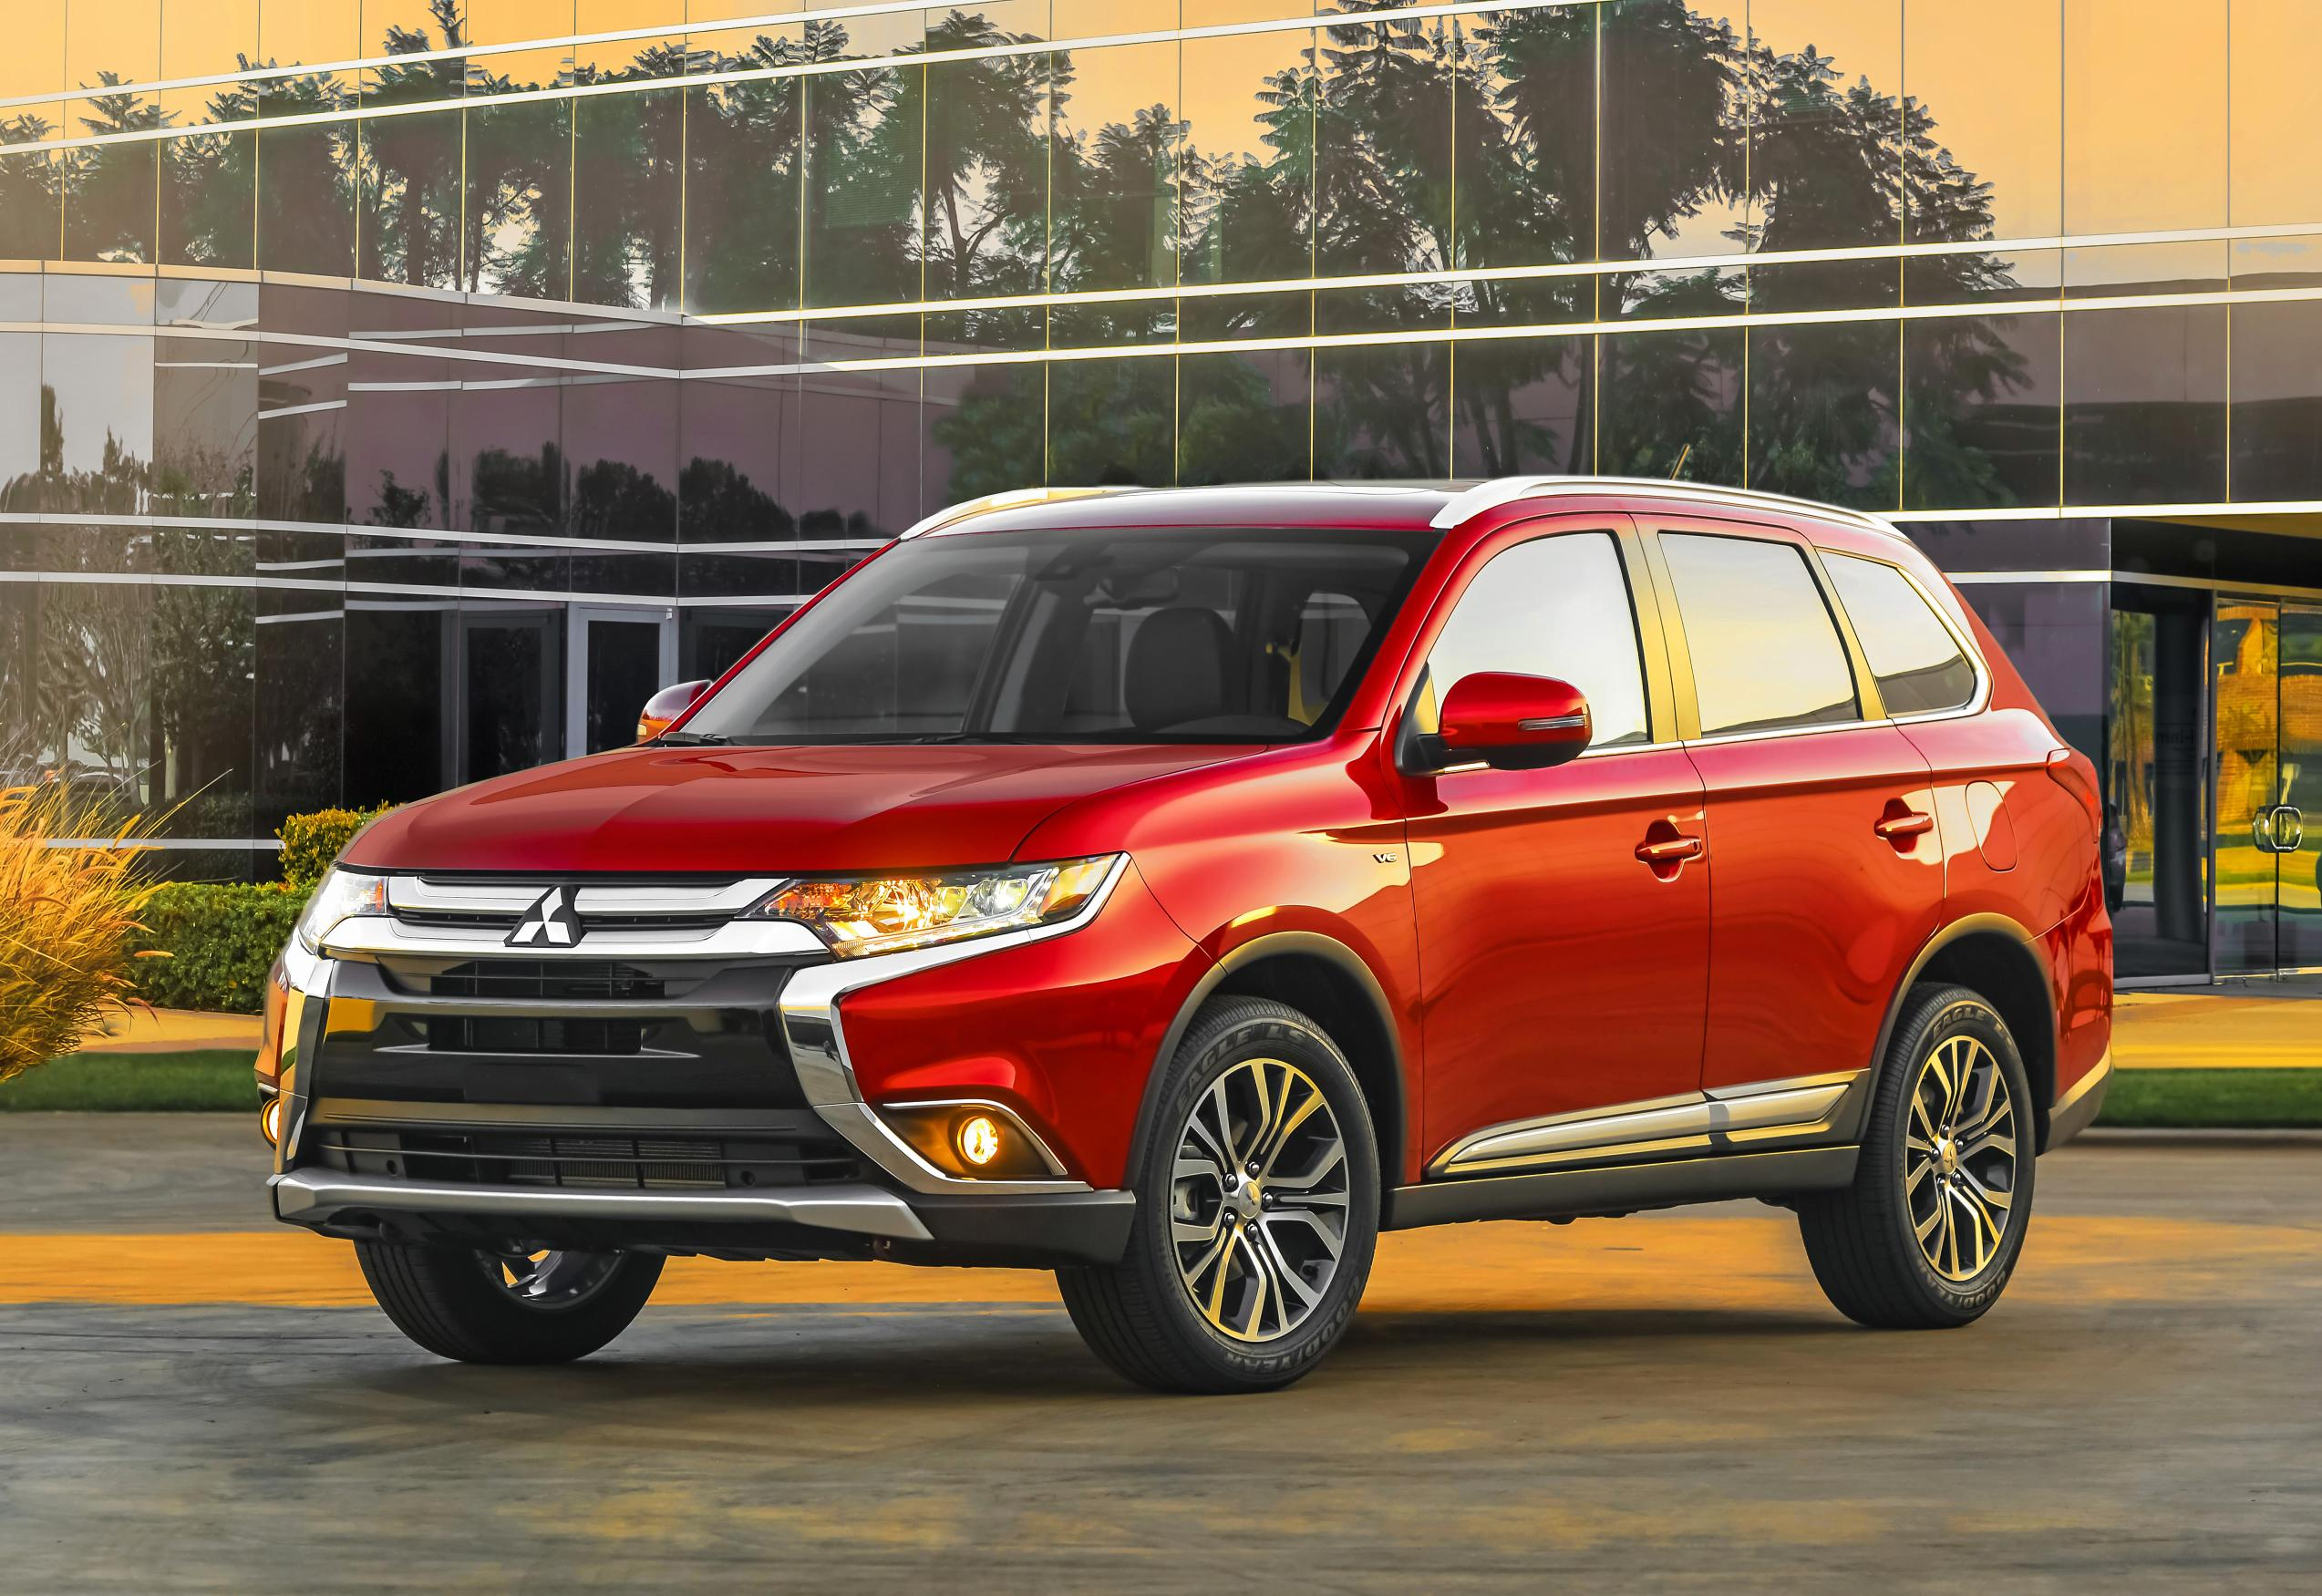 2016 mitsubishi outlander features more of everything autoevolution. Black Bedroom Furniture Sets. Home Design Ideas